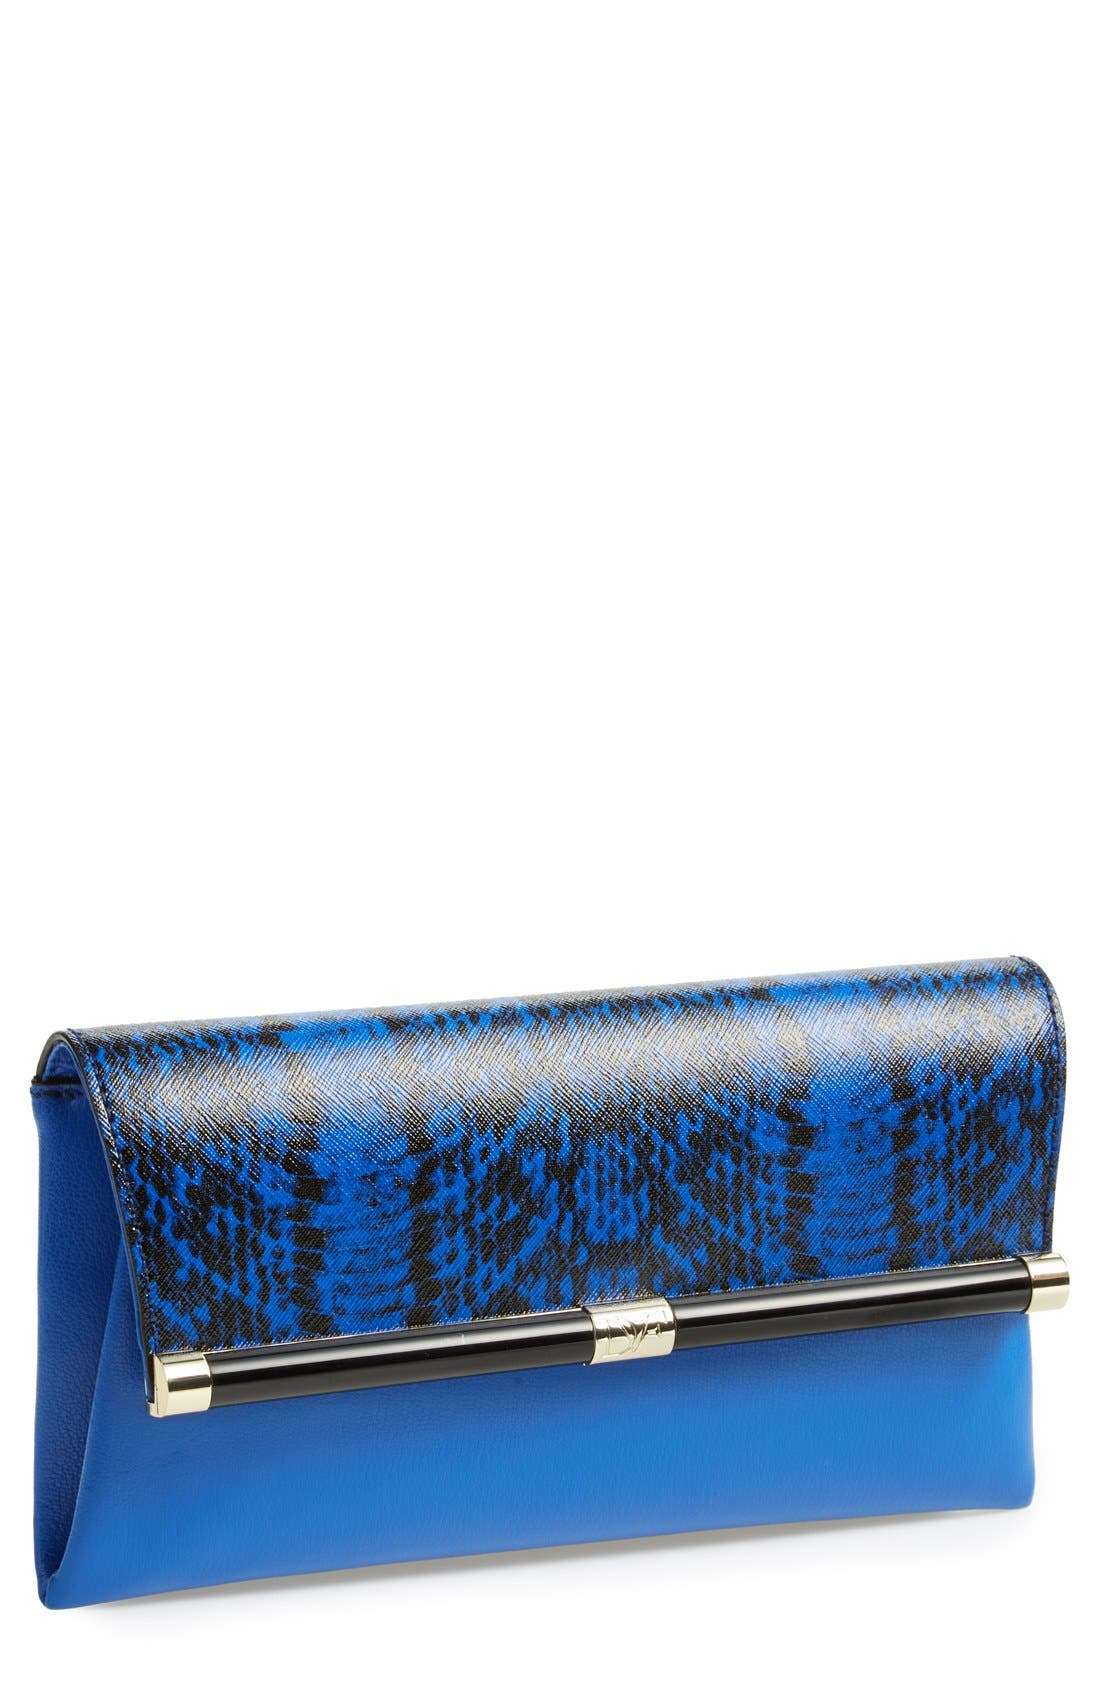 Alternate Image 1 Selected - Diane Von Furstenberg '440' Envelope Clutch